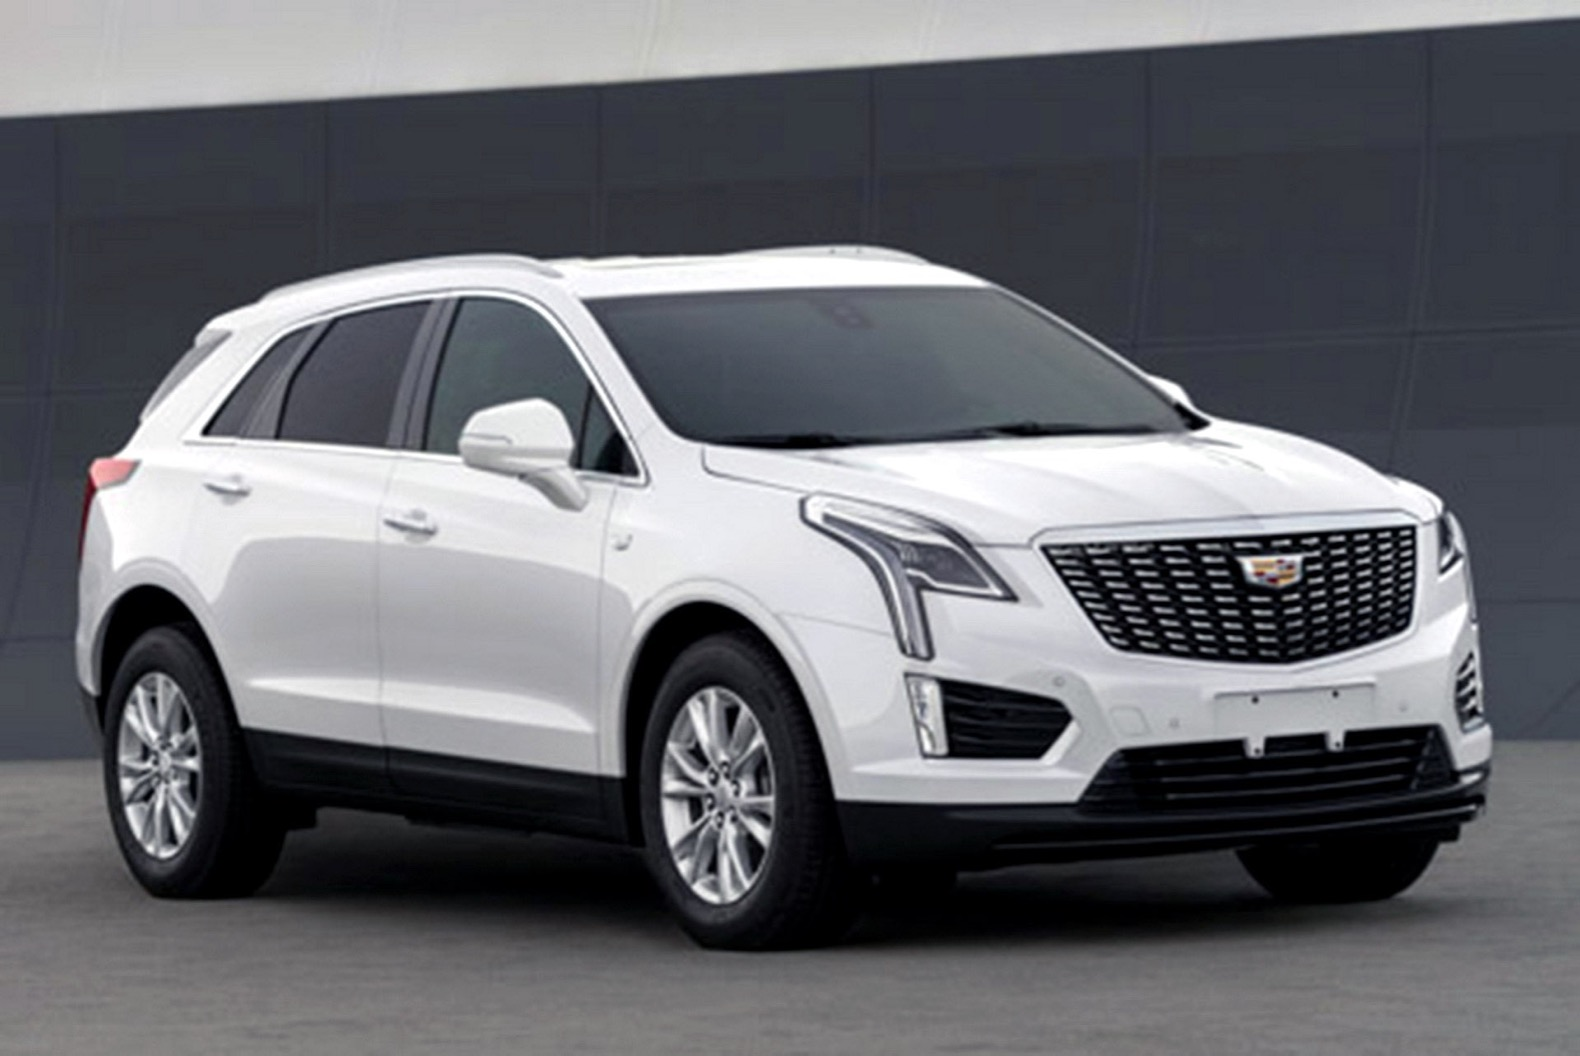 2020 Cadillac XT5 facelift leaked | The Torque Report